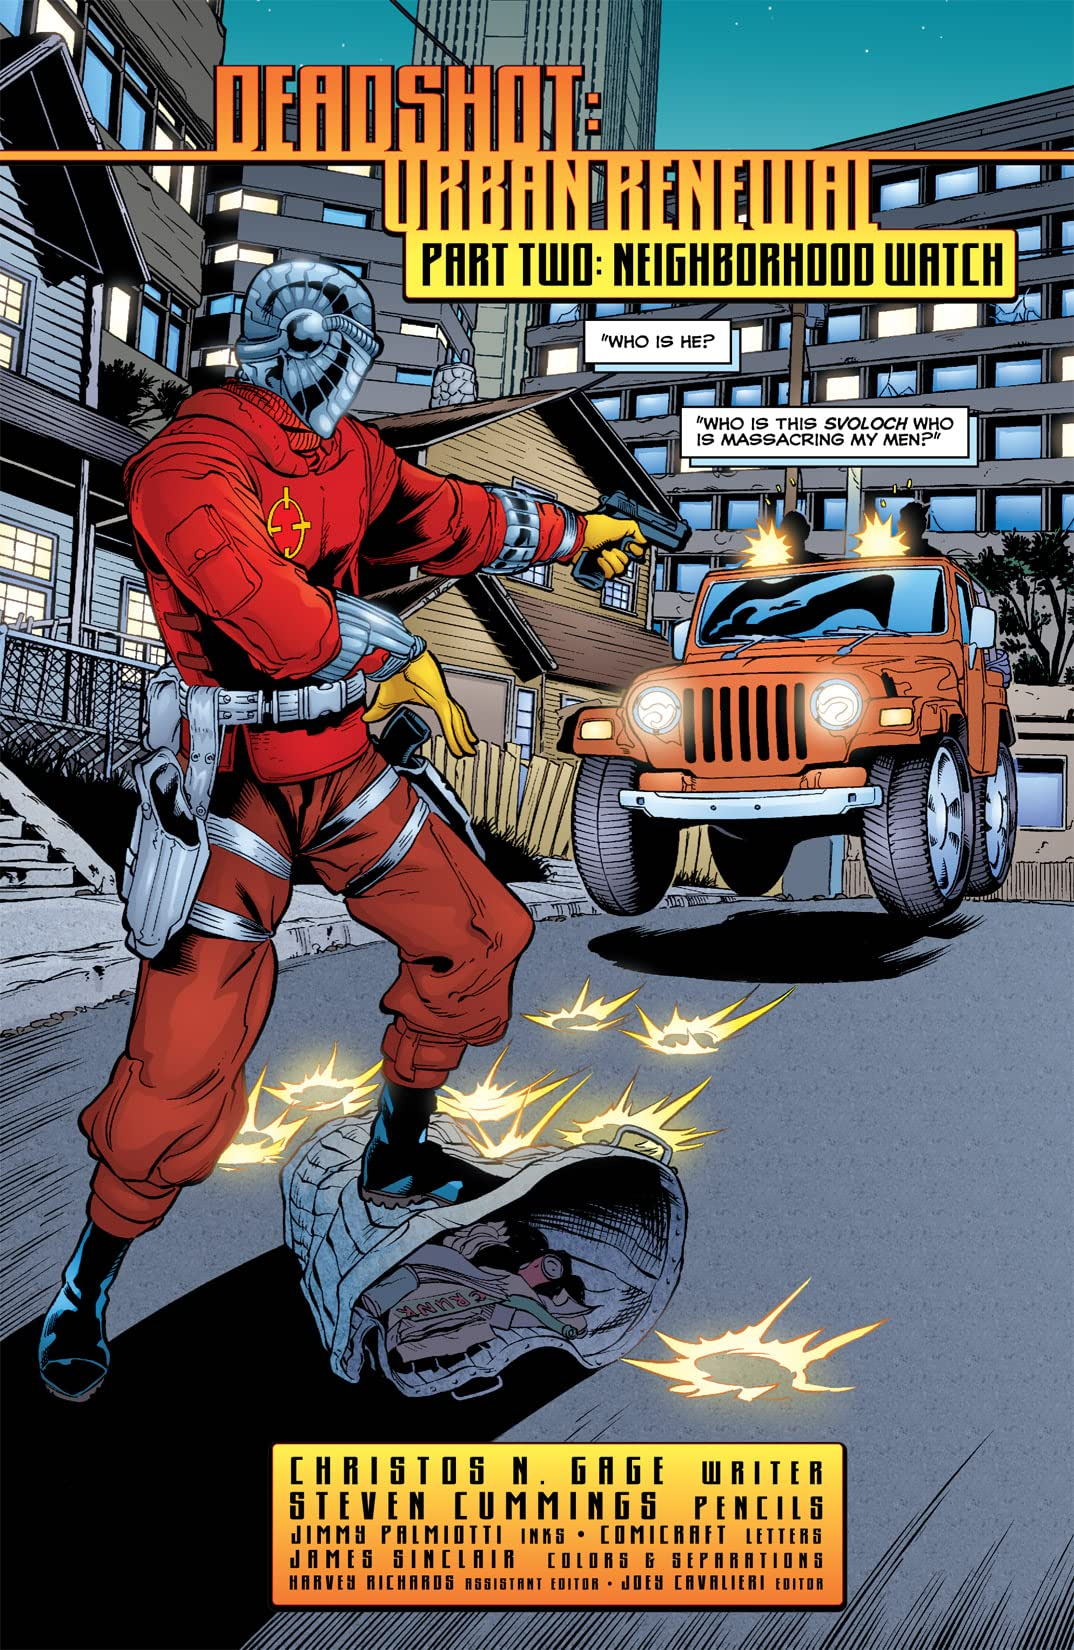 Deadshot (2005) #2 (of 5)